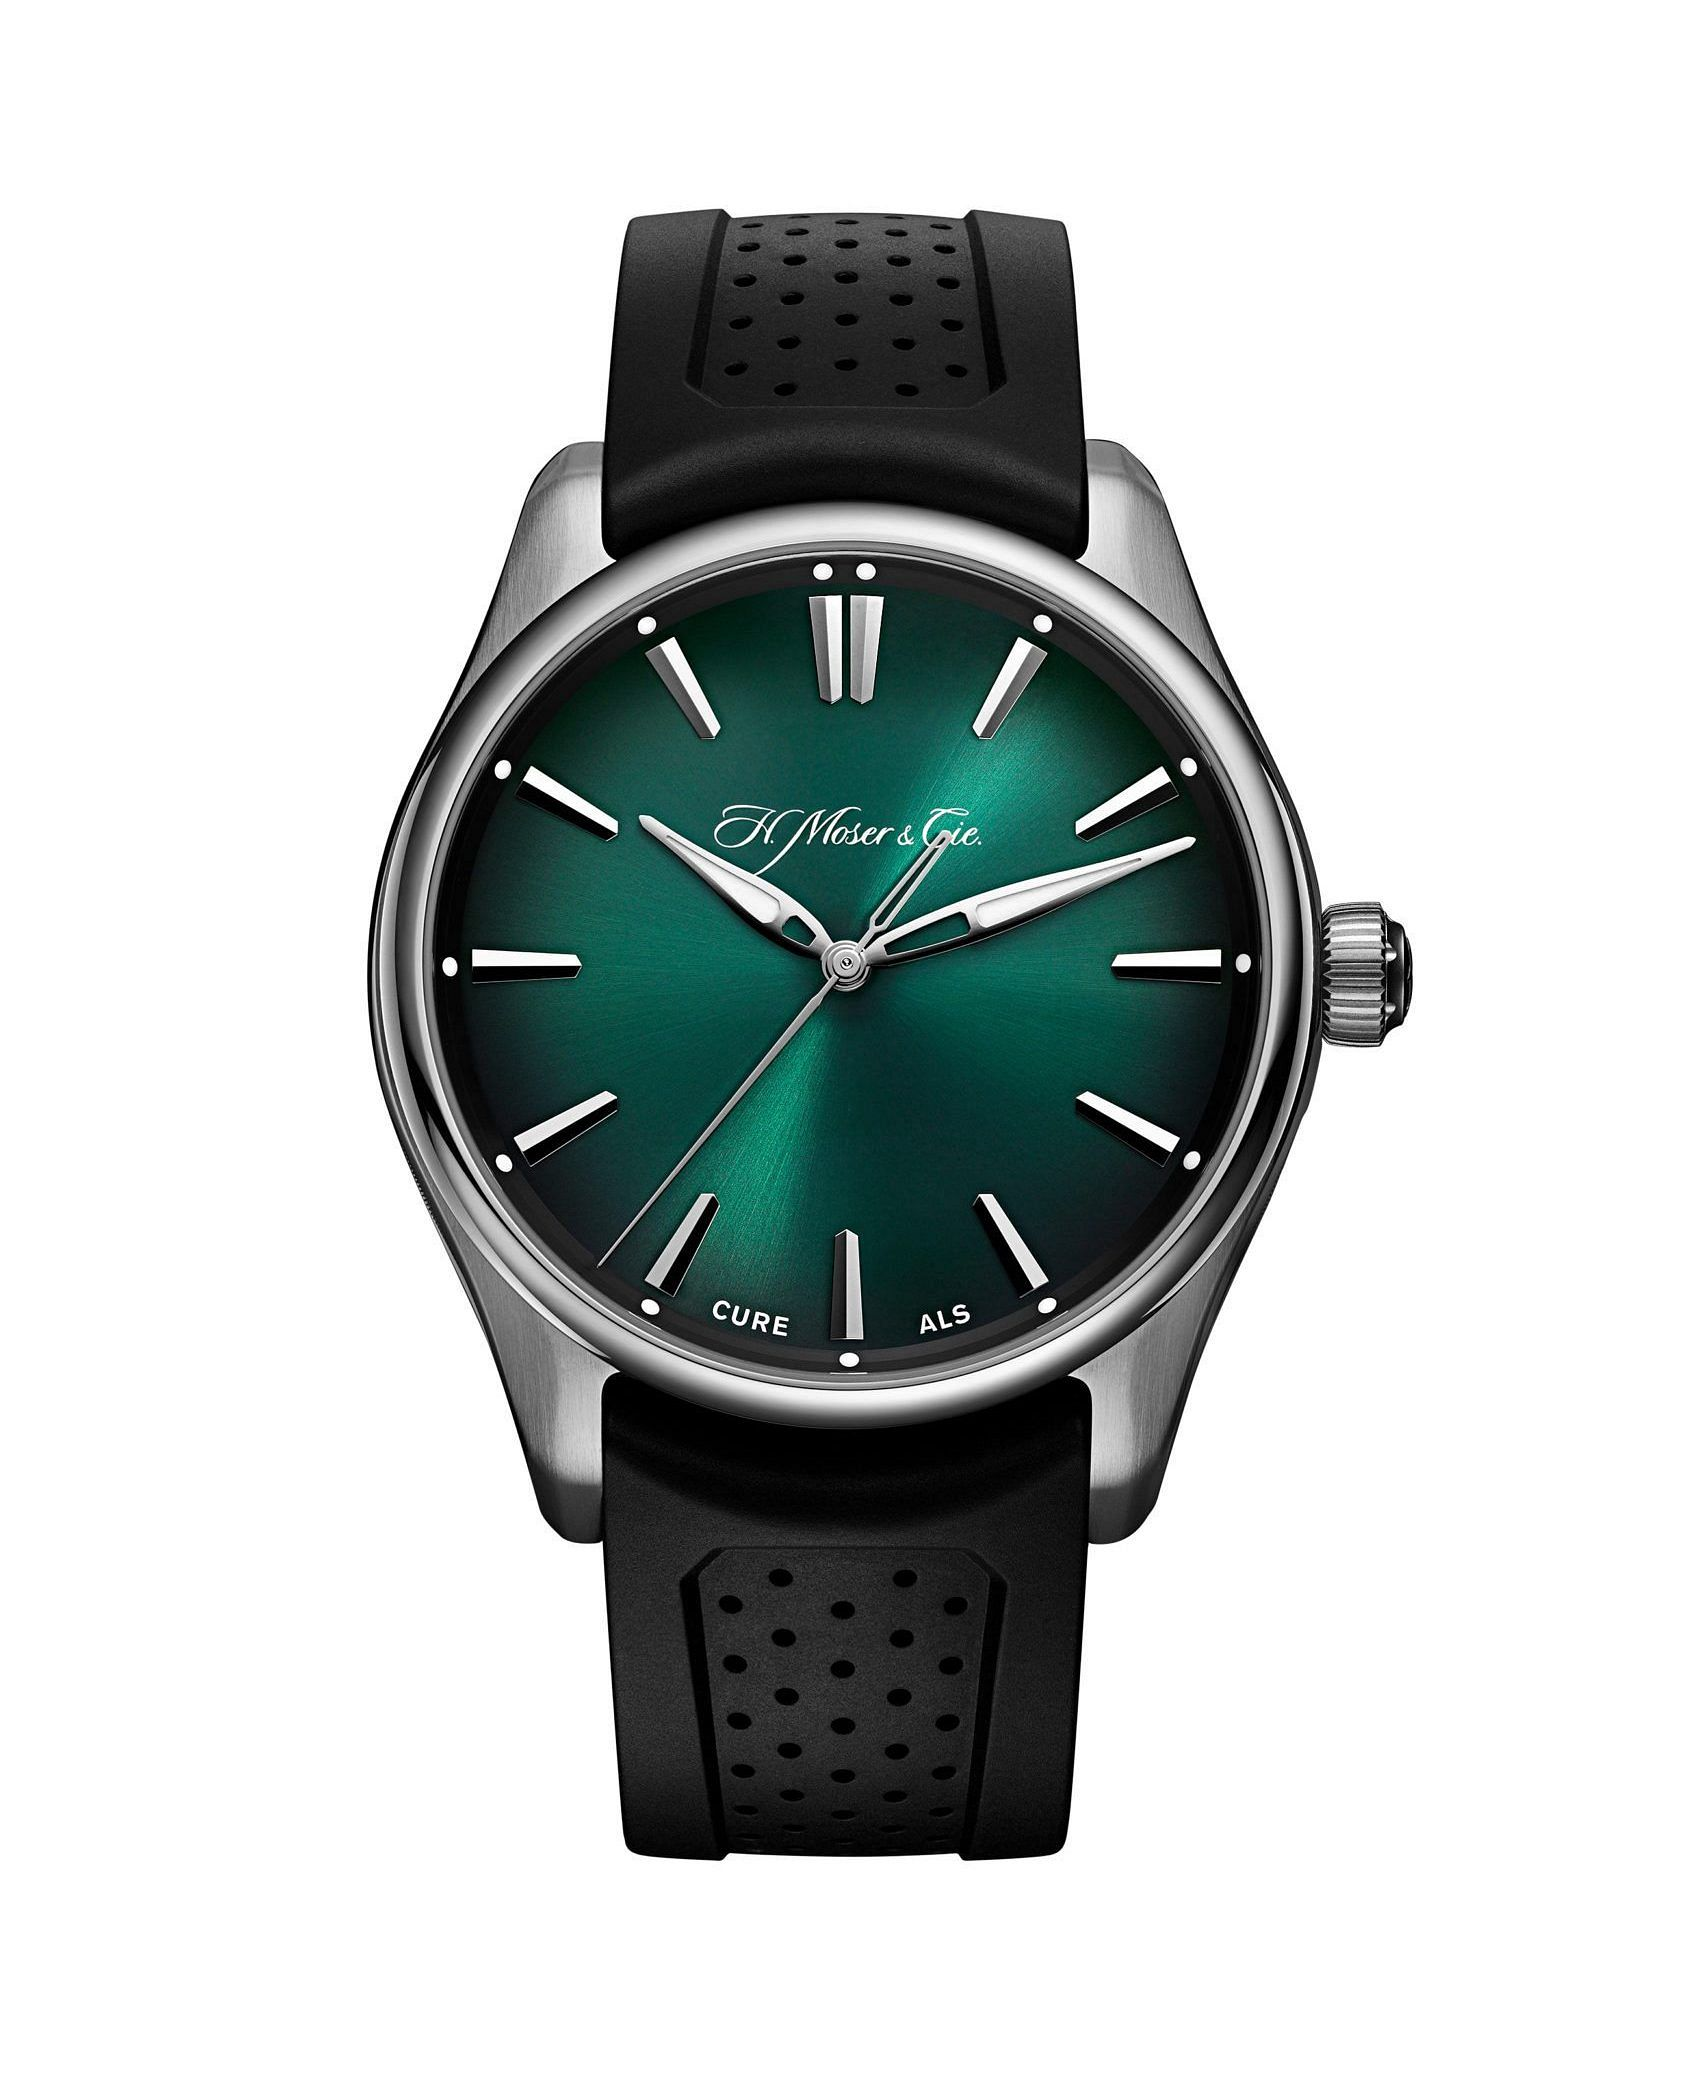 H. Moser & Cie. Cure ALS Pioneer